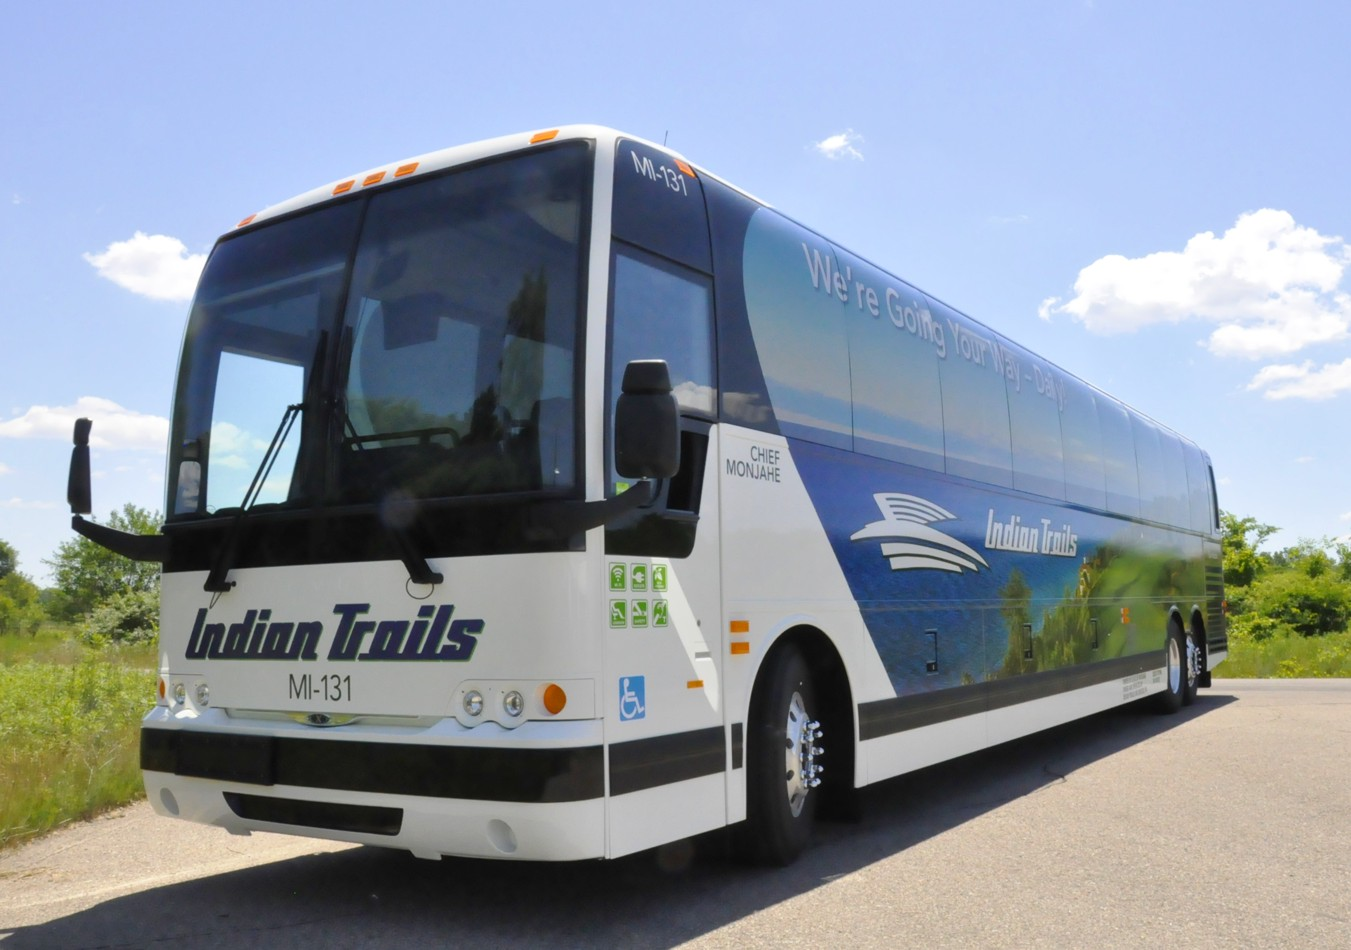 Wi-Fi, Outlets and more: Inside a modern charter bus